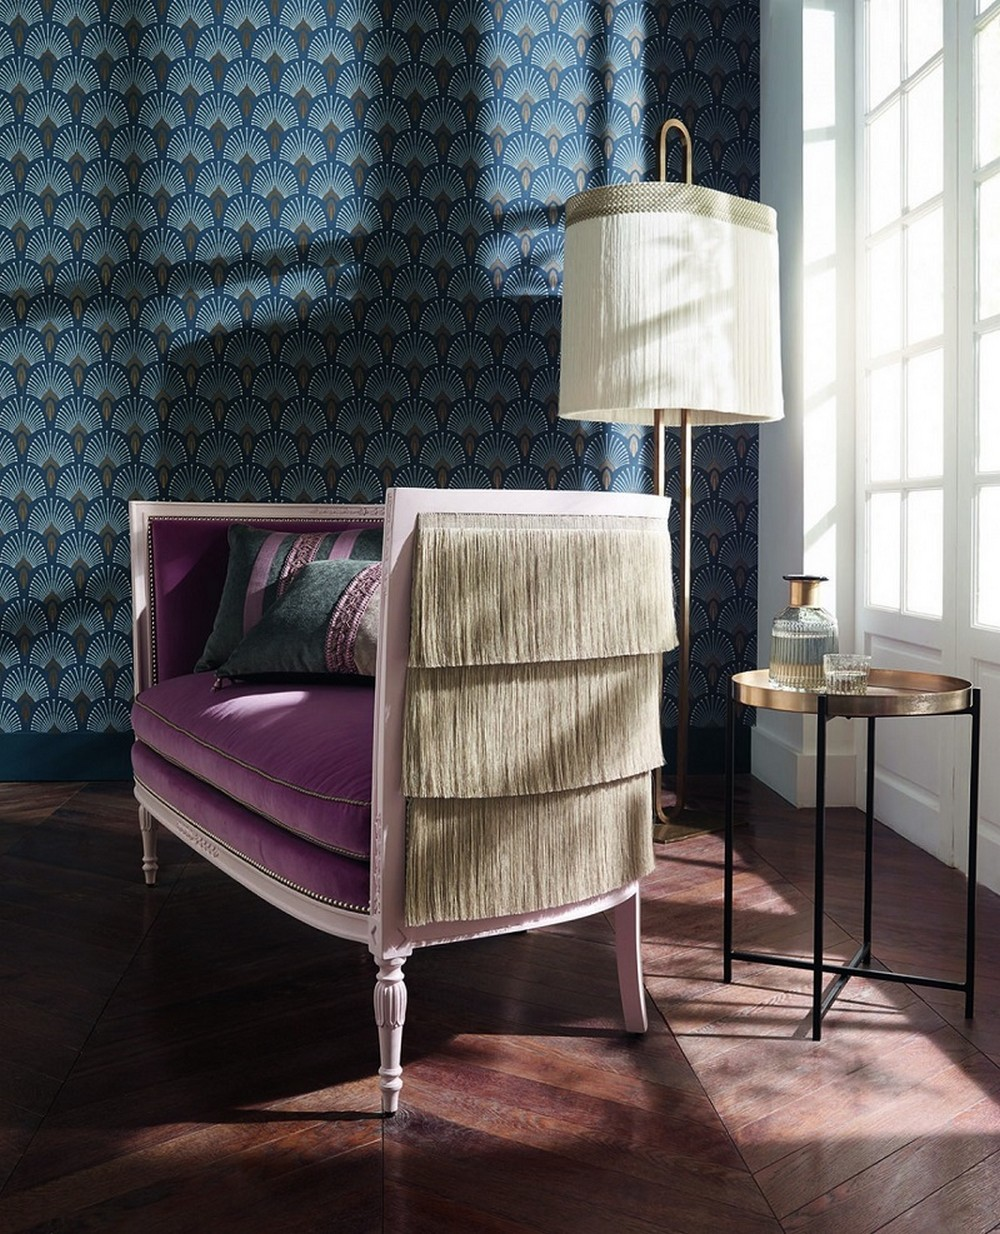 3 Incredible Novelties From Top Brands To See At Paris Deco Off 2020 paris deco off 3 Incredible Novelties From Top Brands To See At Paris Deco Off 2020 3 Incredible Novelties From Top Brands To See At Paris Deco Off 2020 5